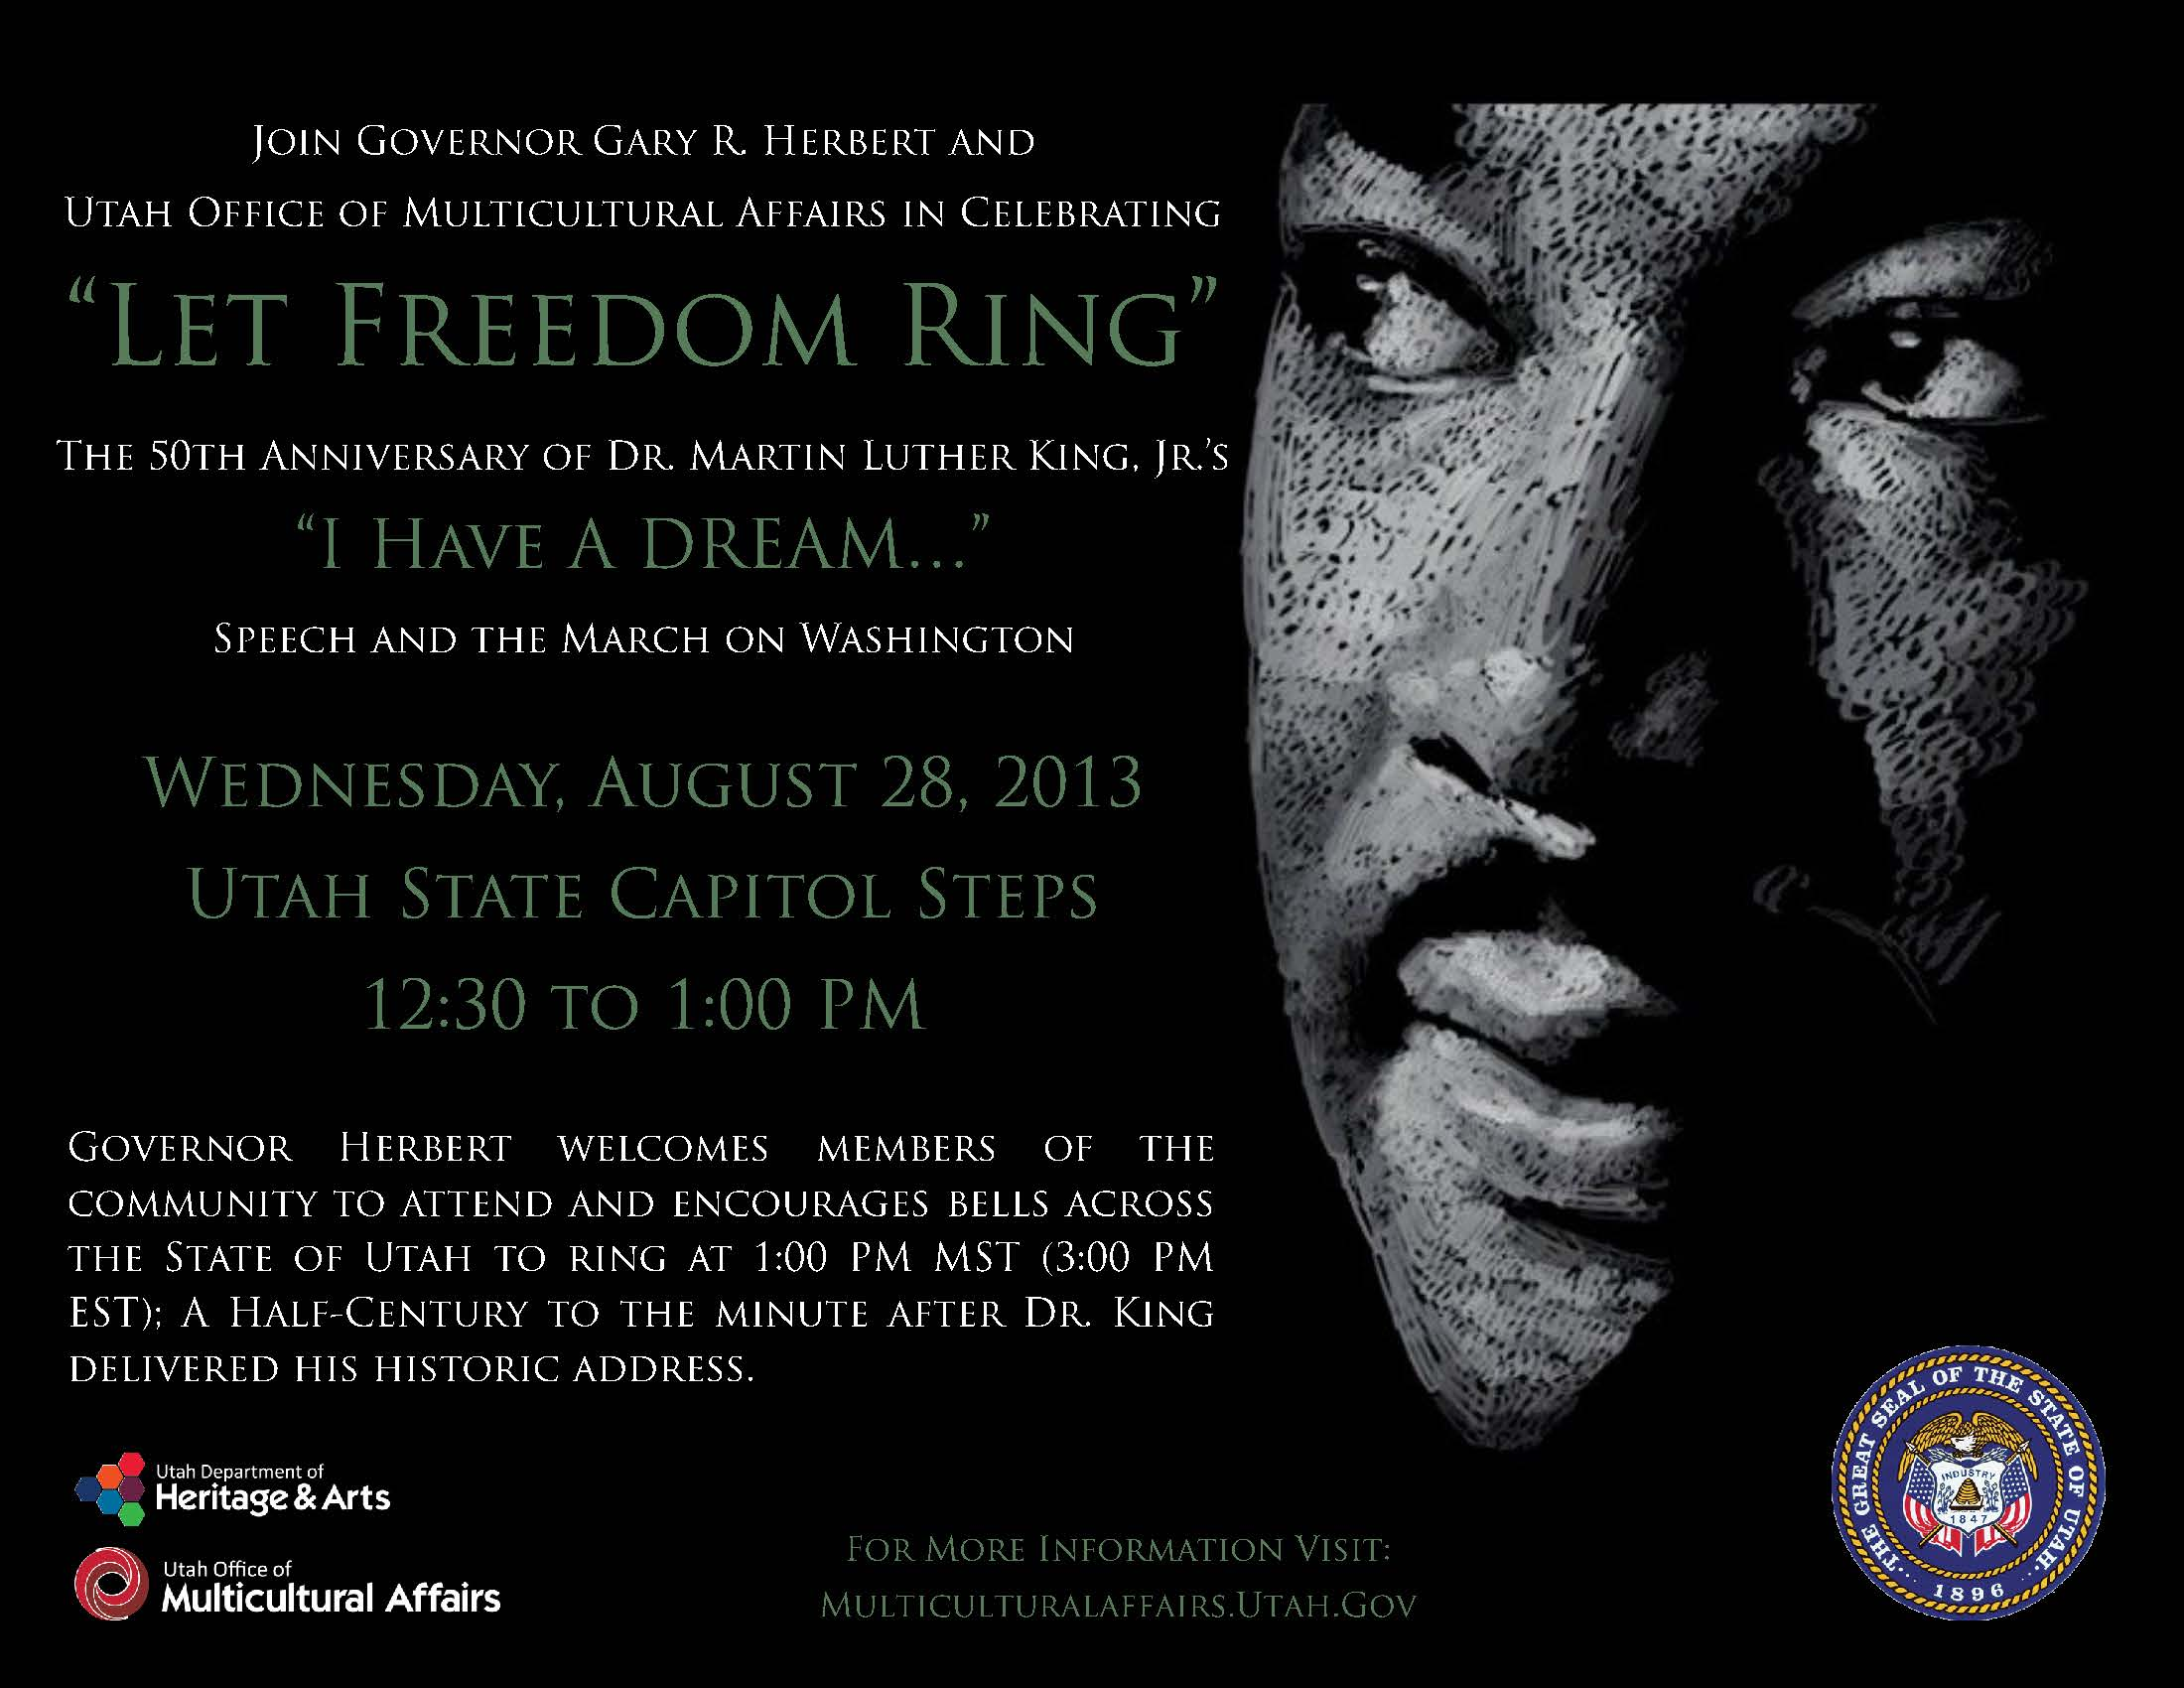 martin luther king jr i have a dream speech date